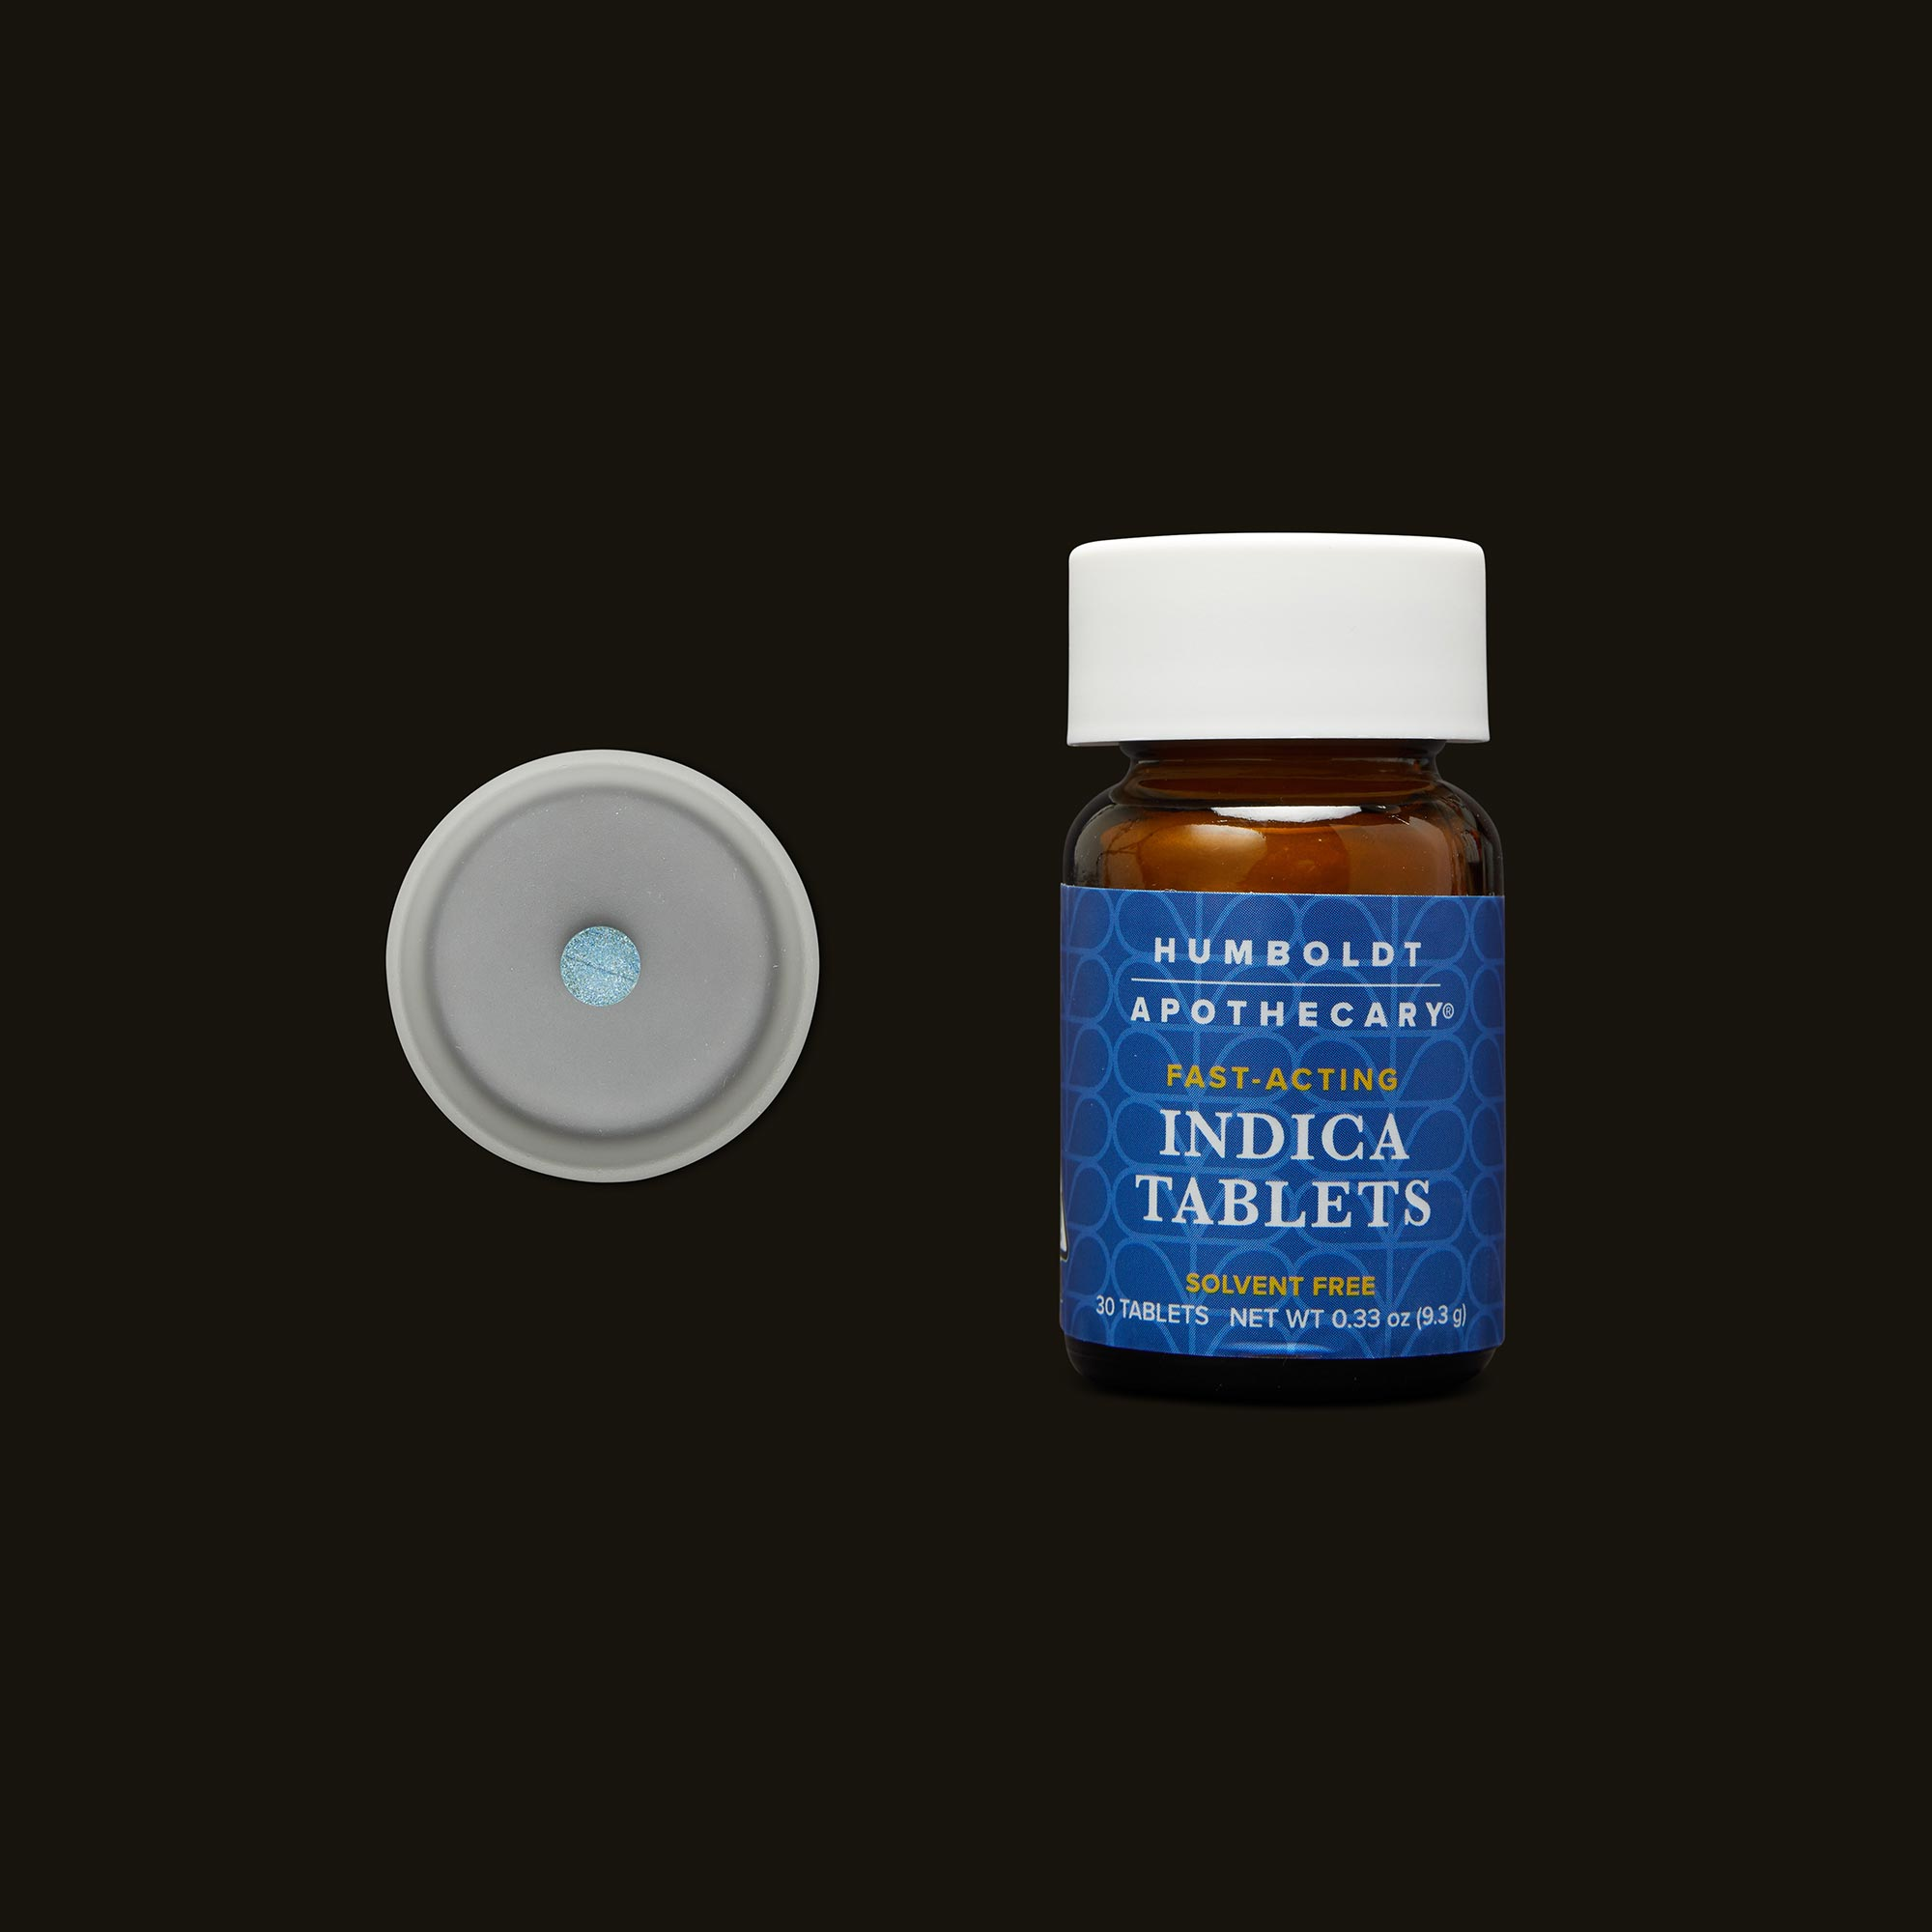 Humboldt Apothecary Indica Tablets